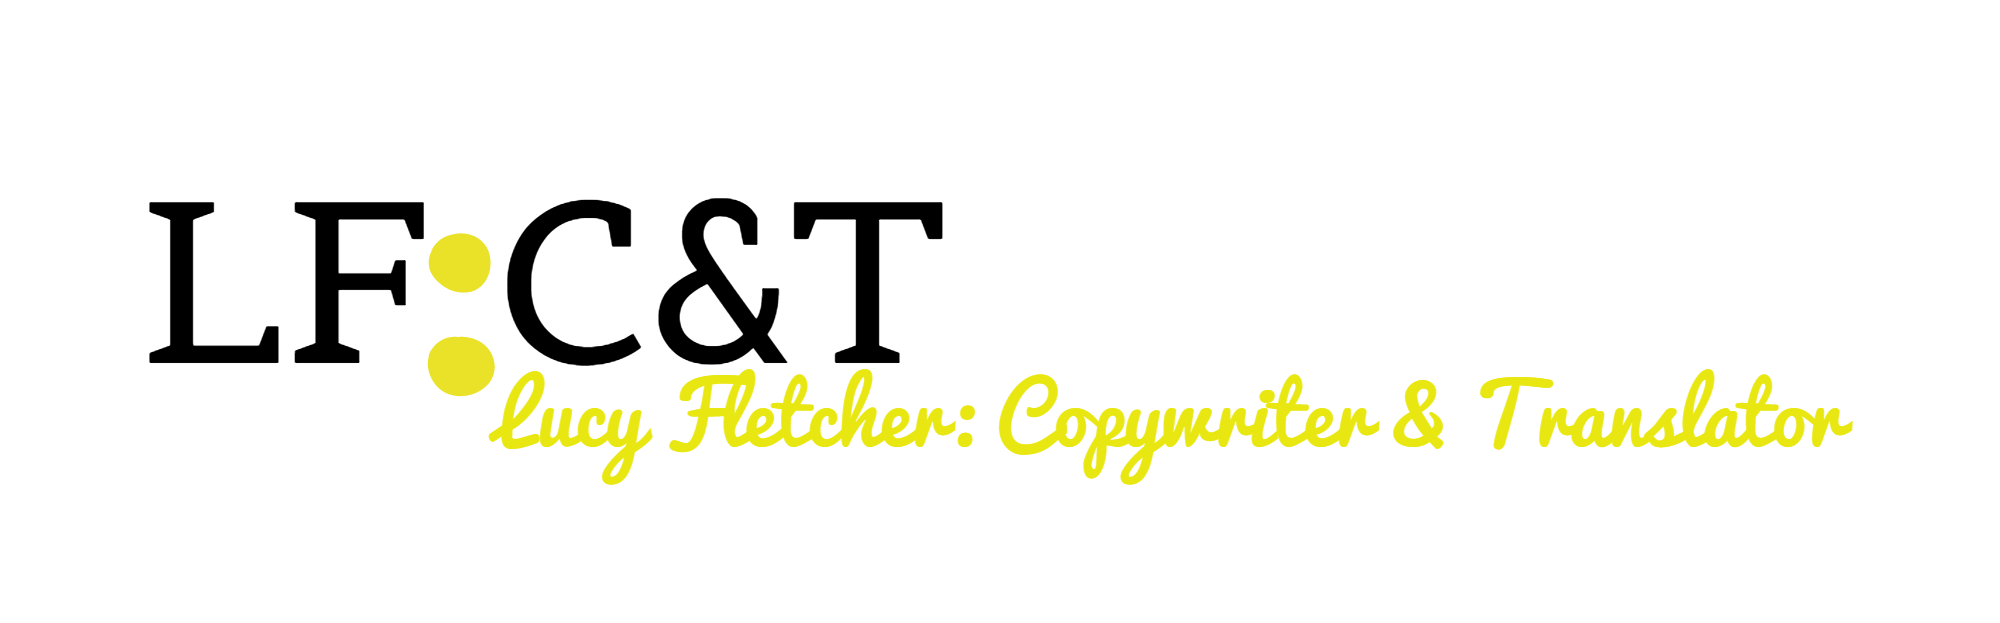 Lucy Fletcher: Copywriter & Translator